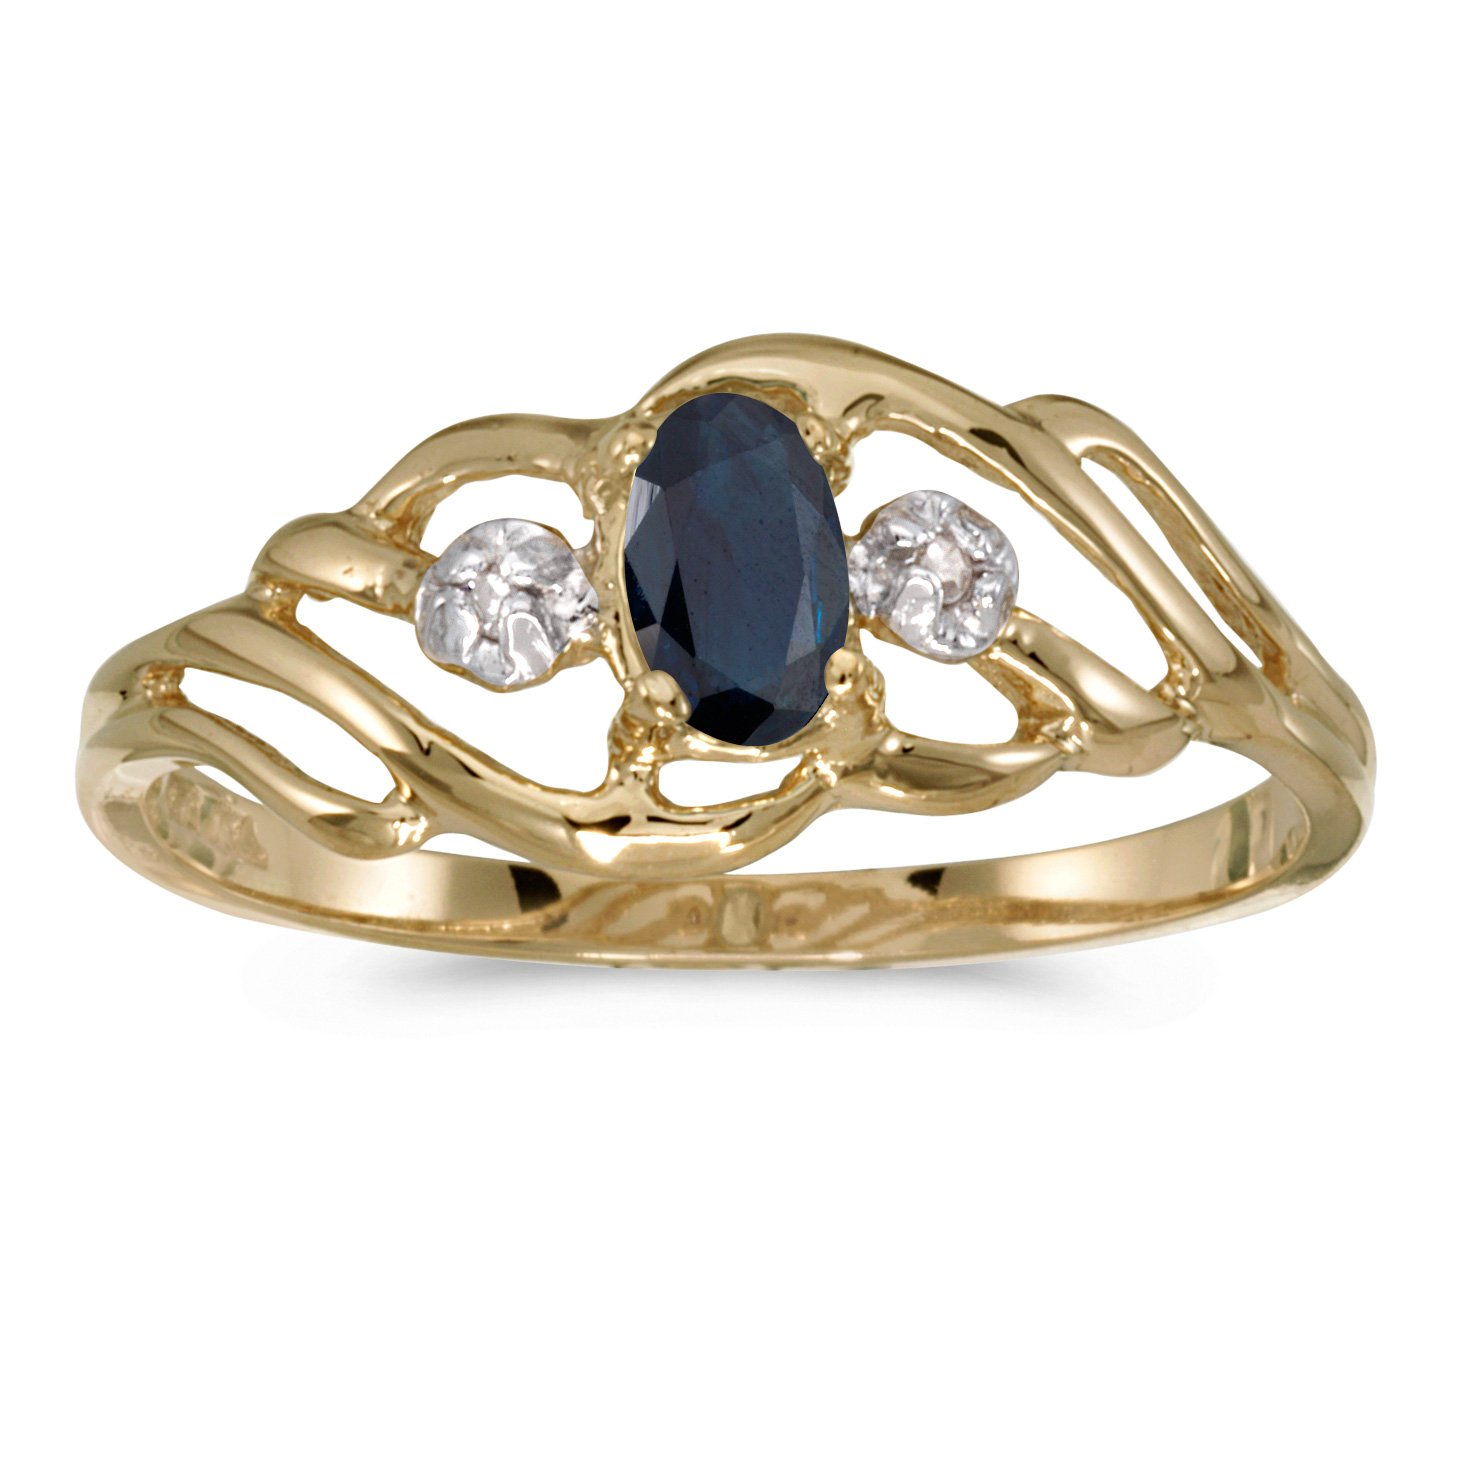 0.25 Carat (ctw) 14k Yellow Gold Oval Blue Sapphire and Diamond Fashion Cocktail Anniversary Ring (5 x 3 MM) - Size 8